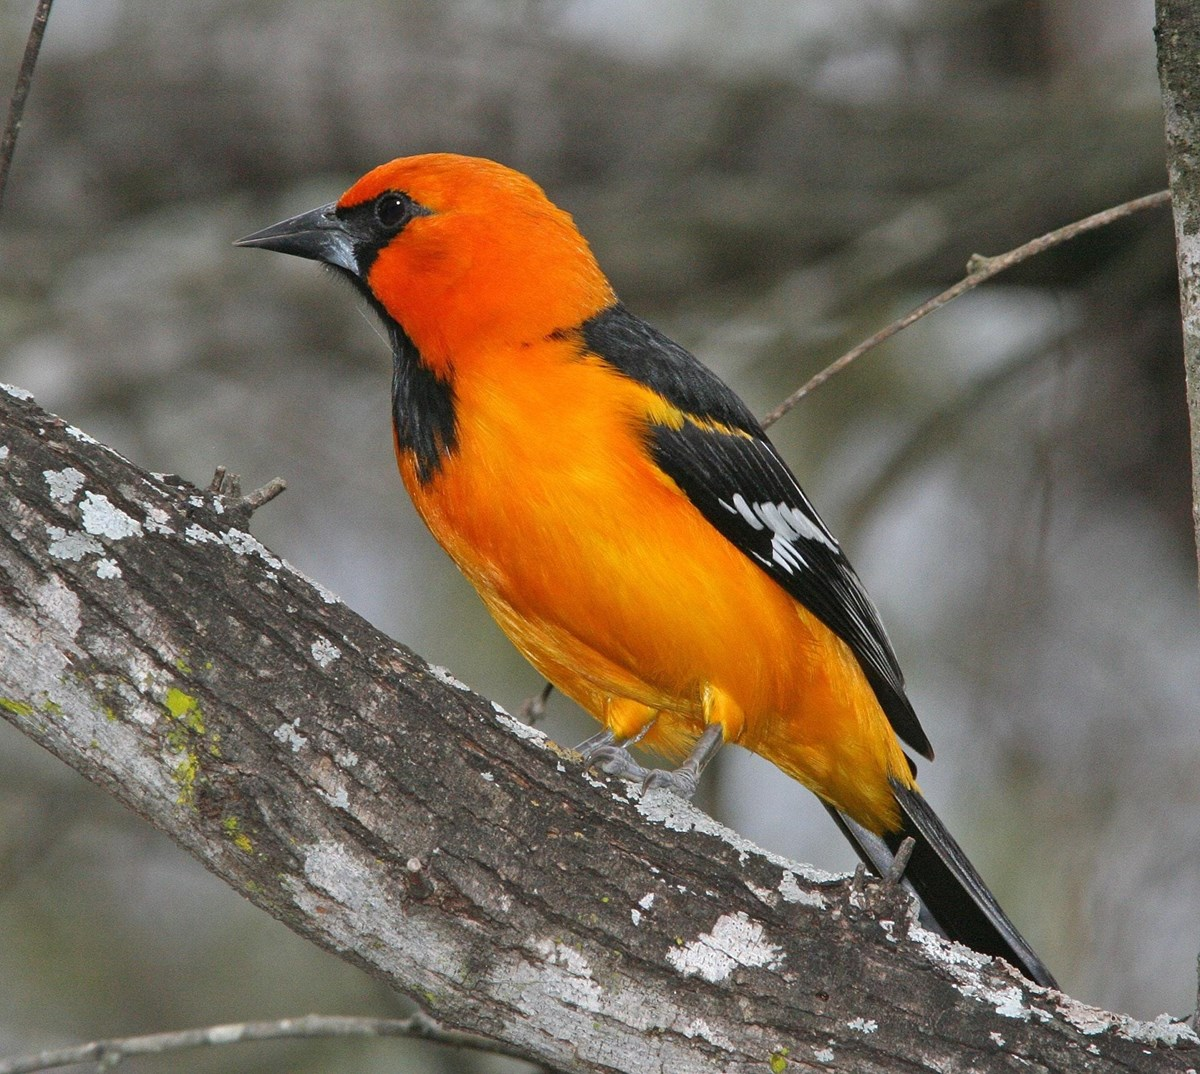 Orange and black bird on tree branch